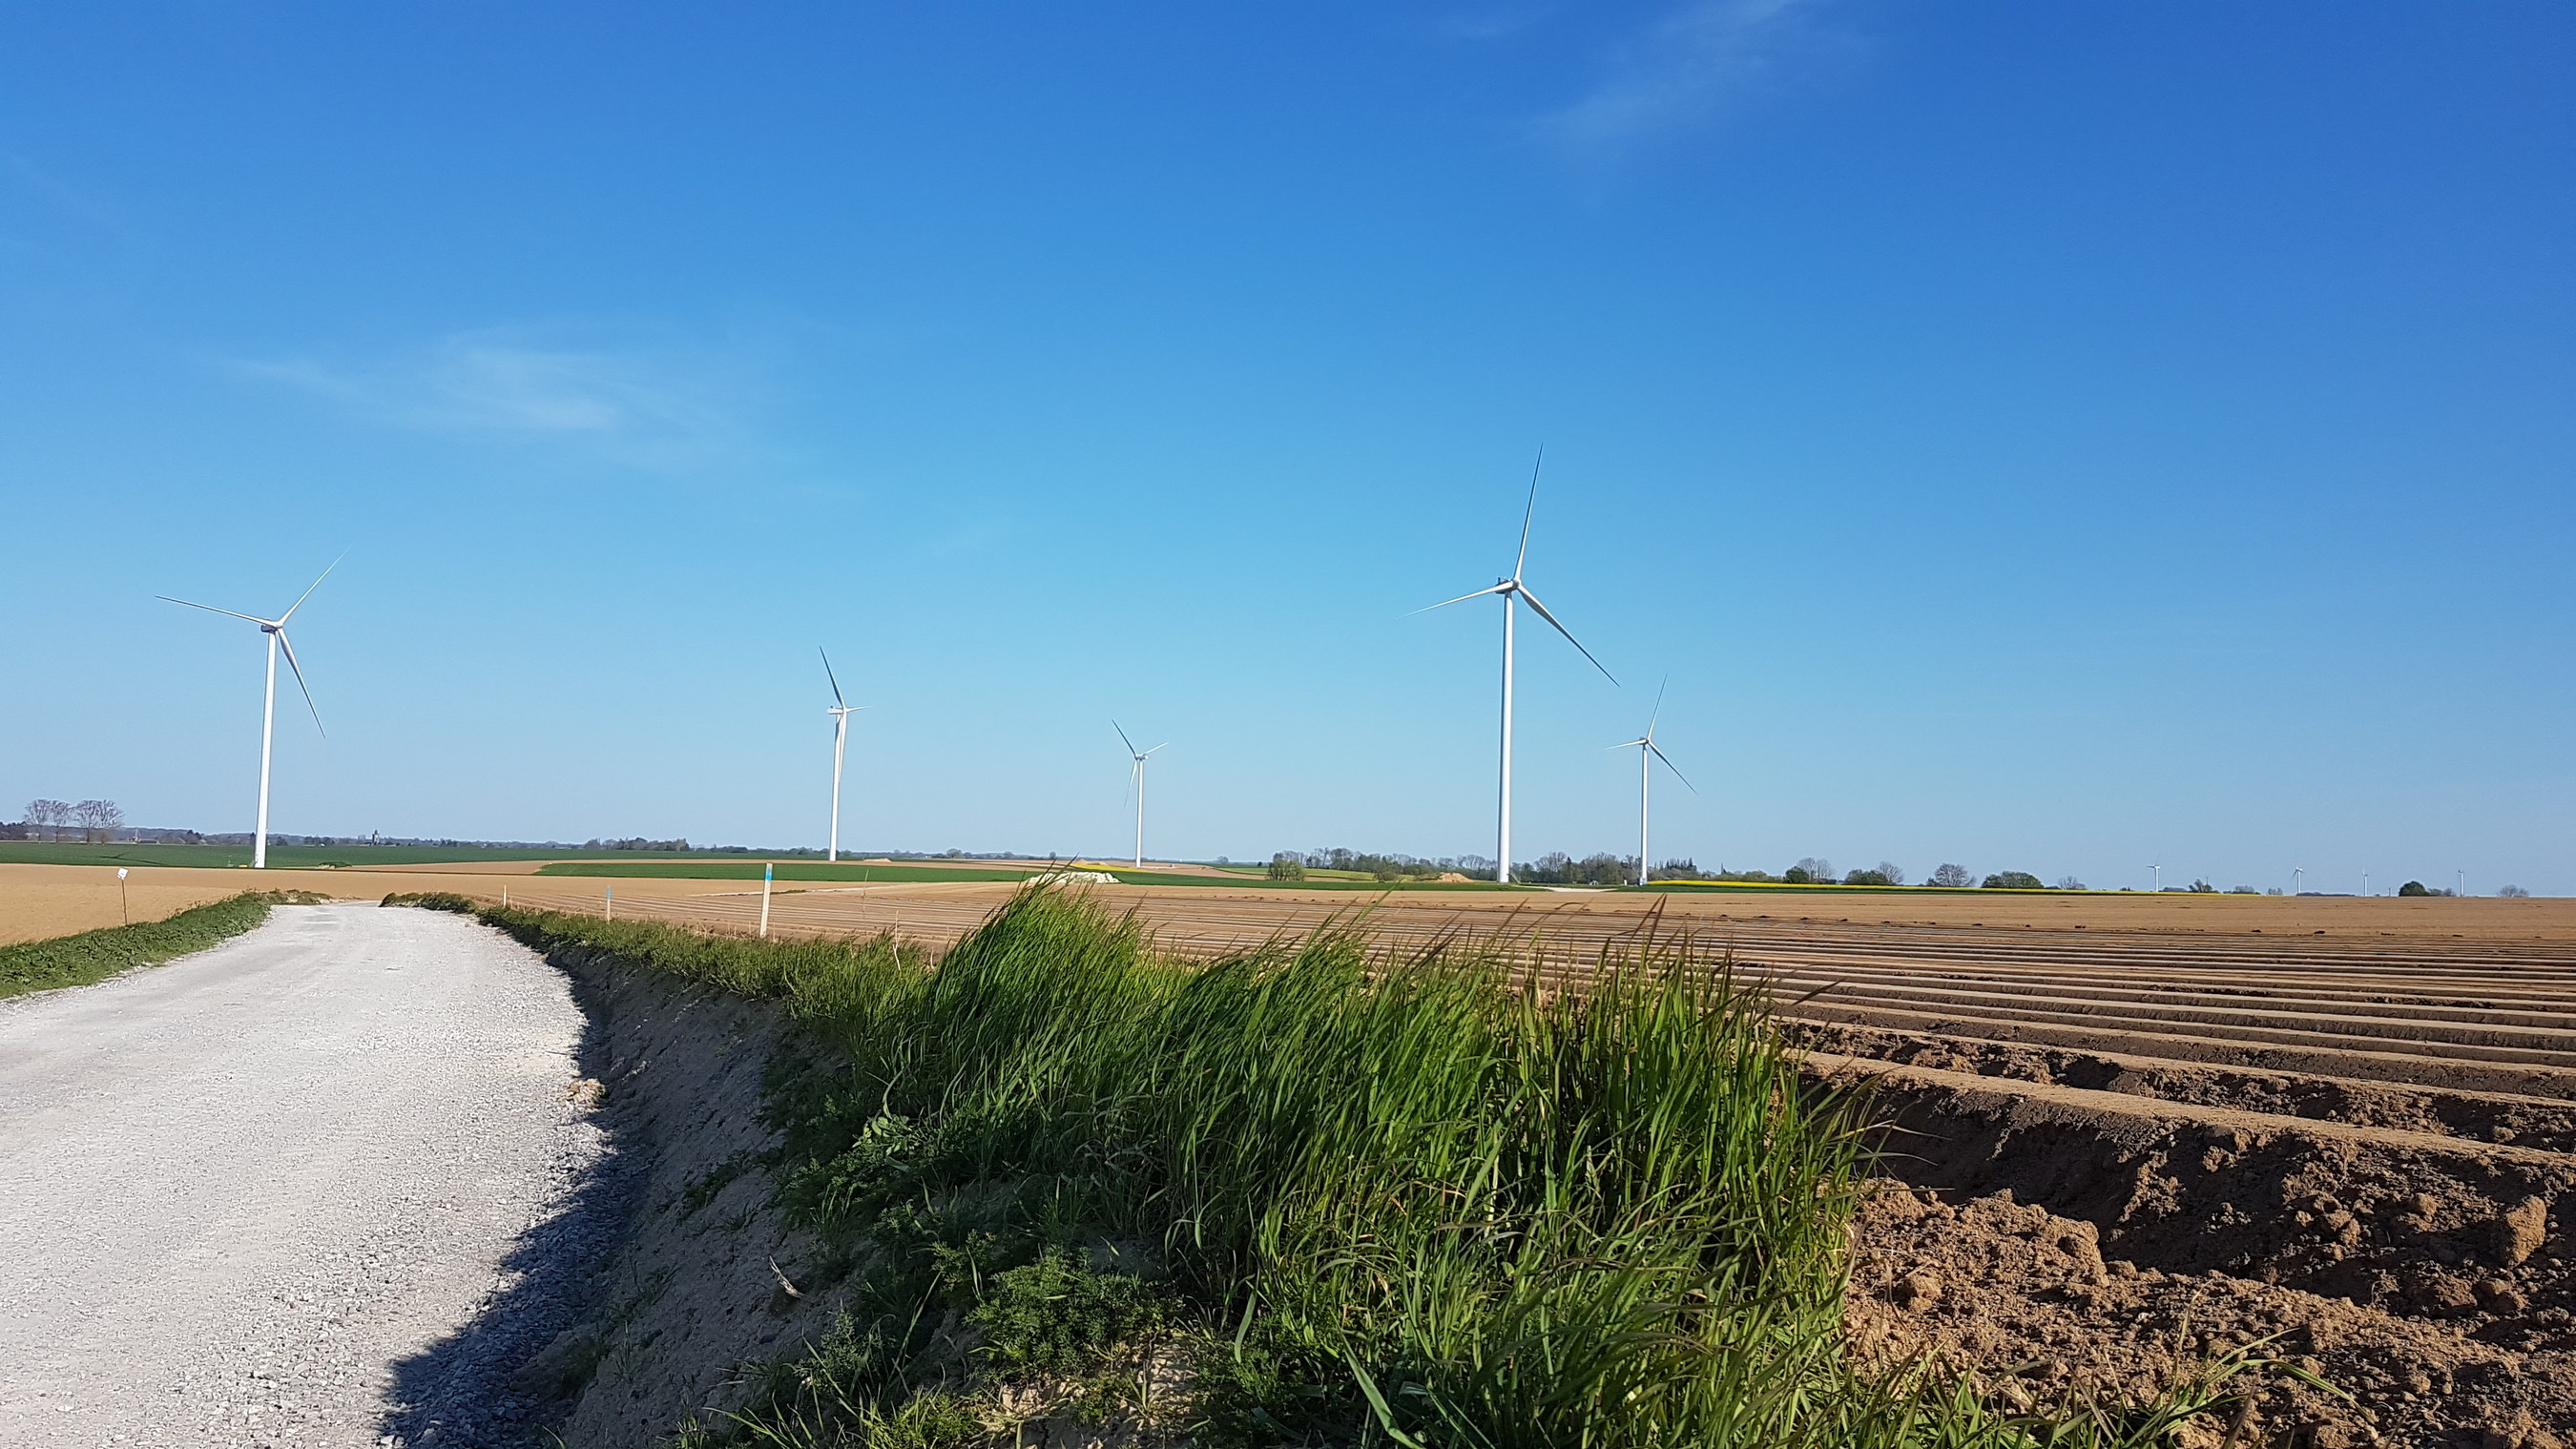 Boralex commissions the Catésis wind farm in France